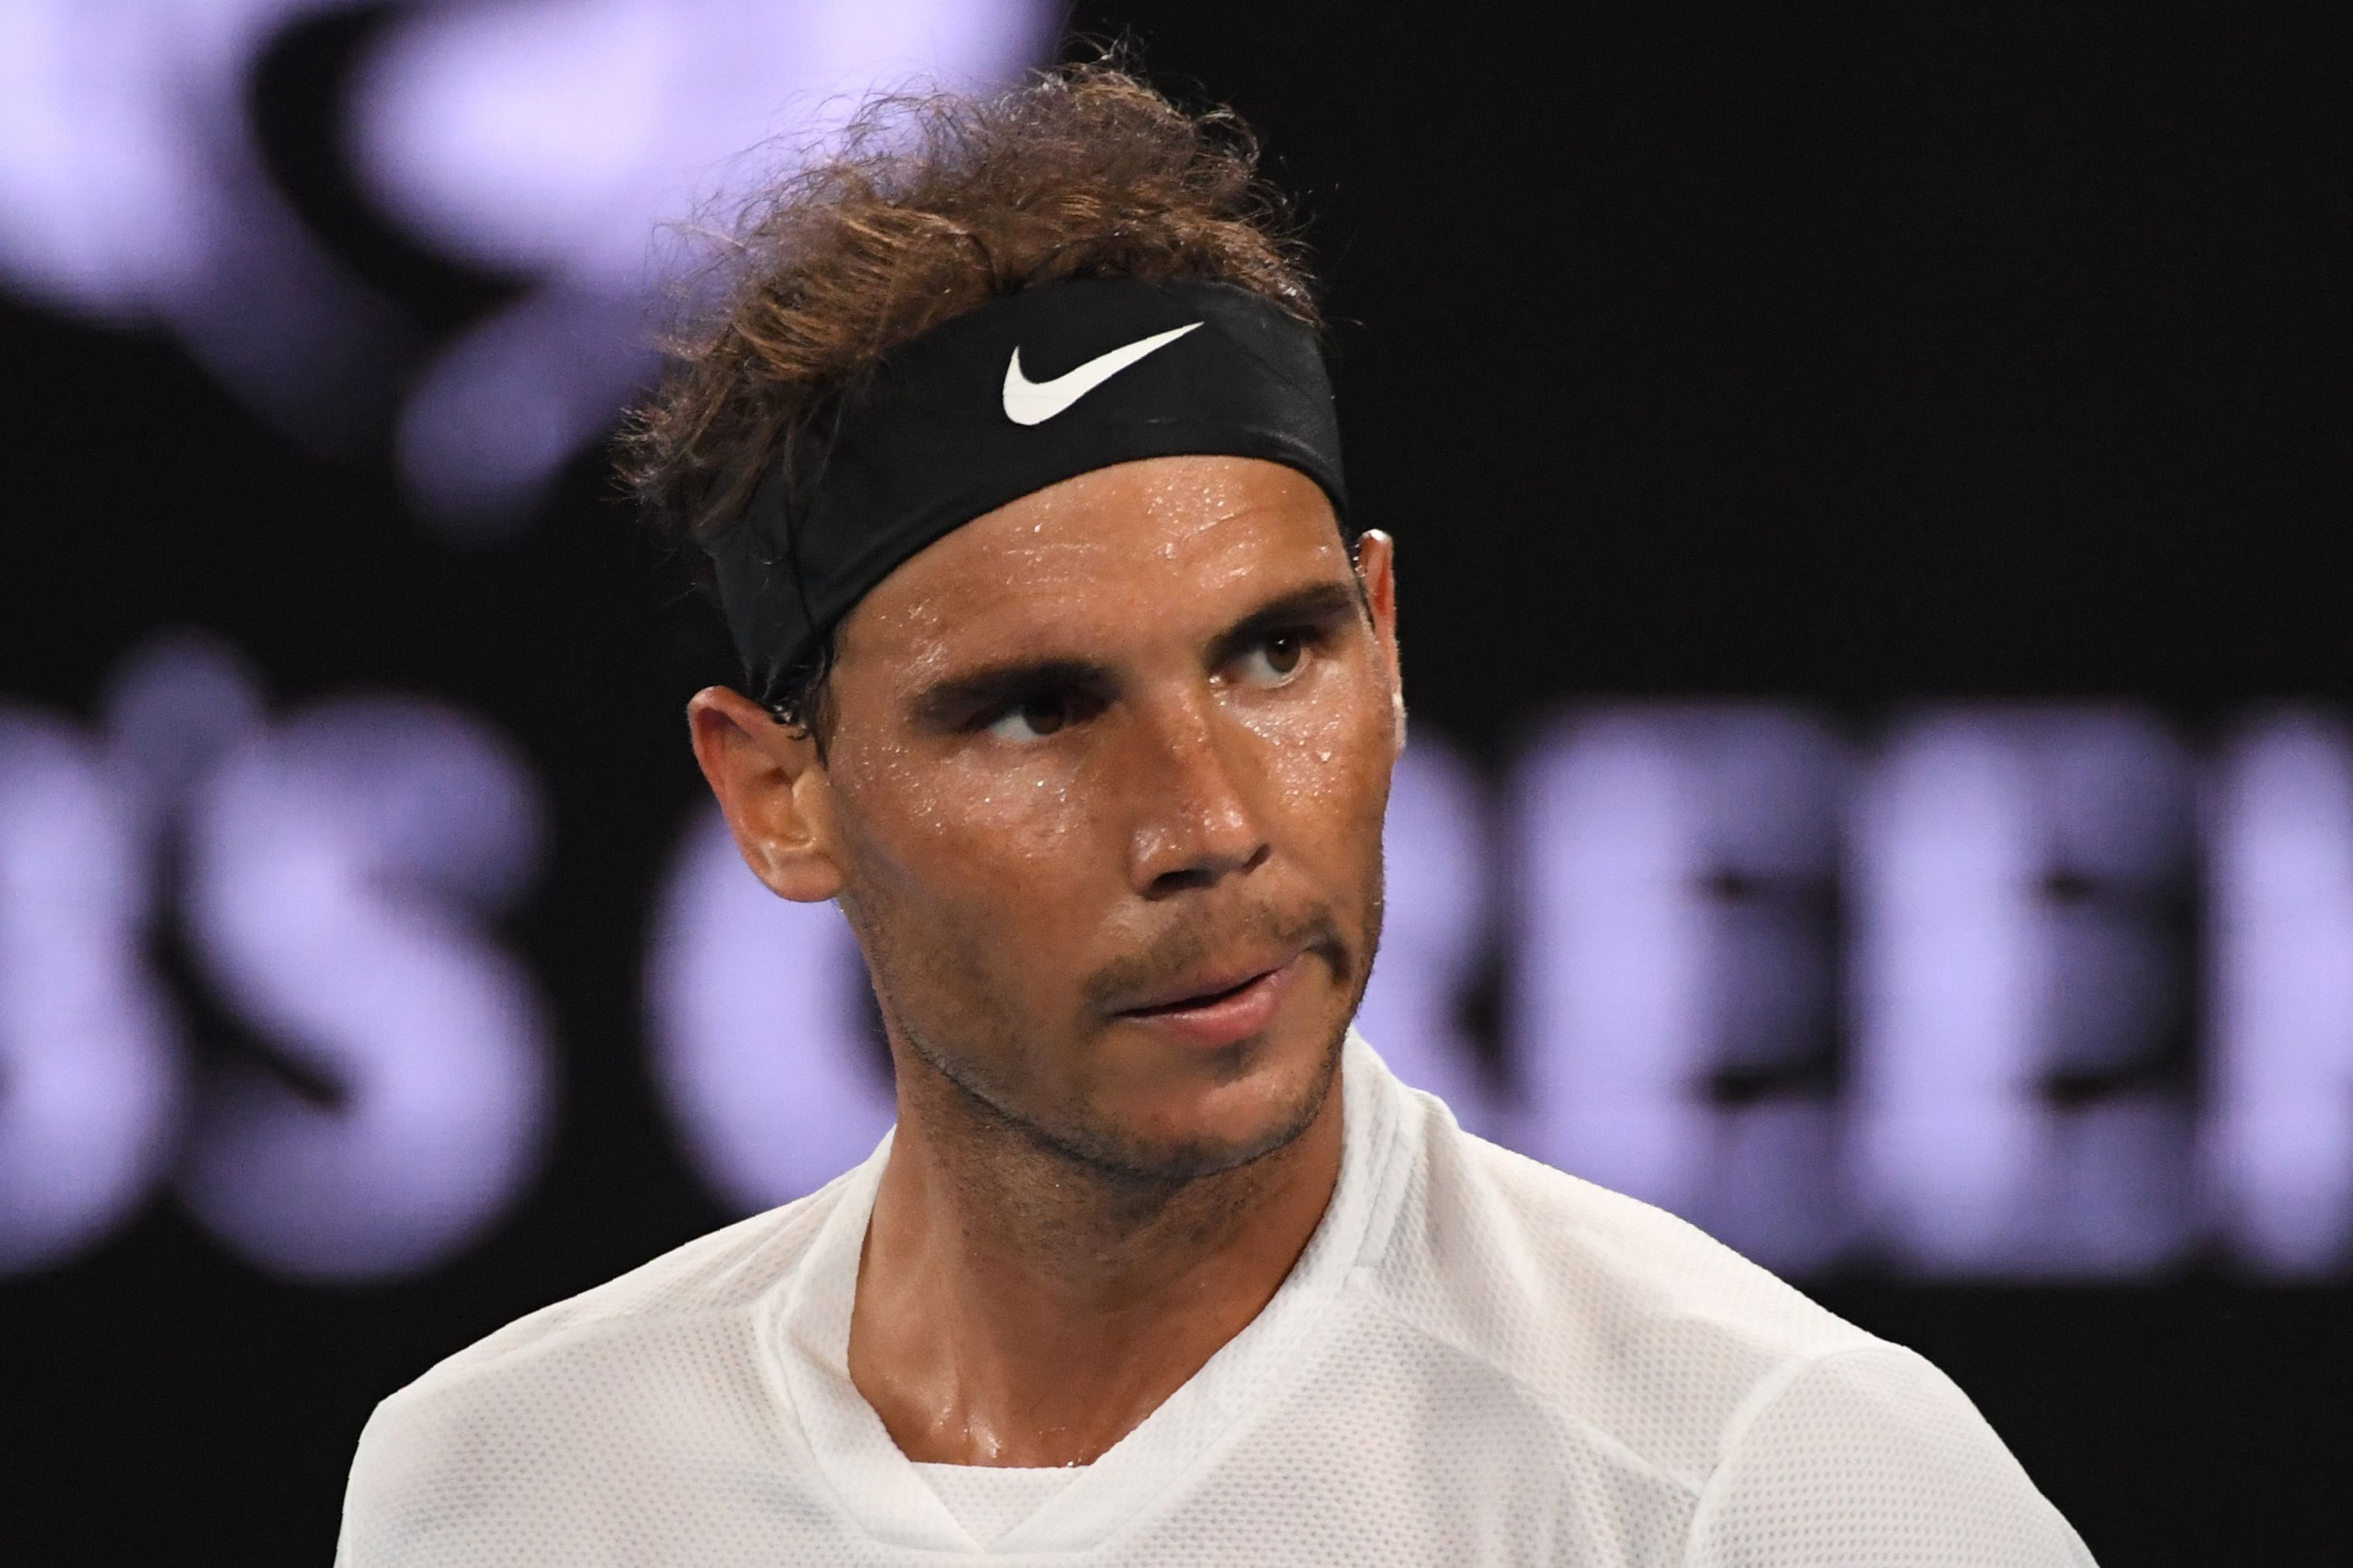 Rafael Nadal sets up quarter-final clash with Milos Raonic